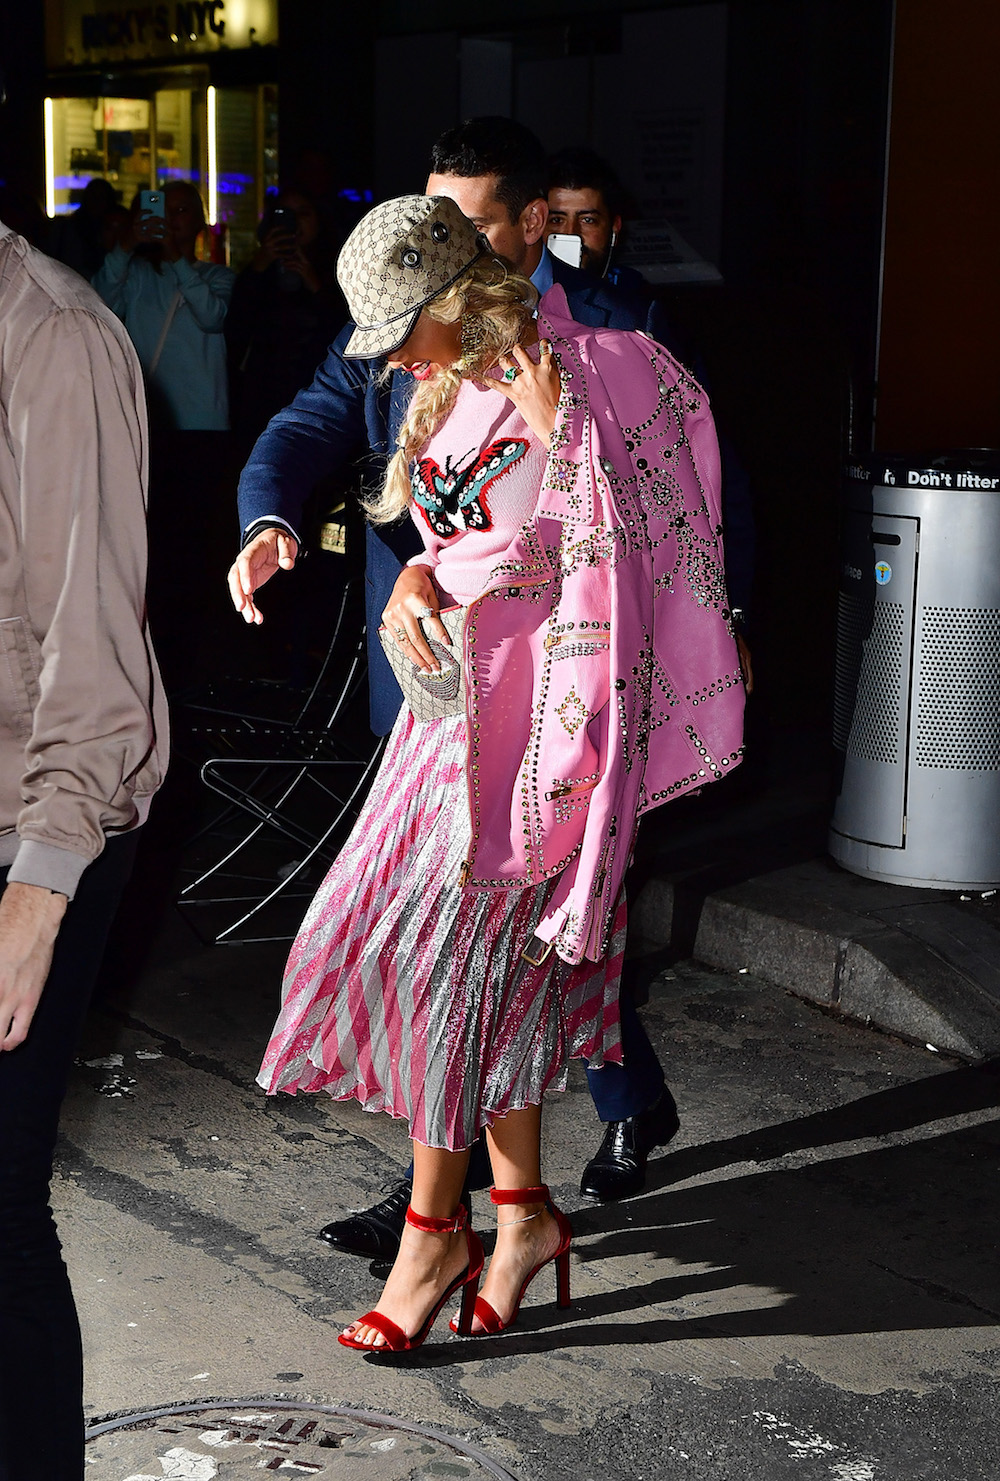 NEW YORK, NY - OCTOBER 05:  Beyonce Knowles seen on the streets of Manhattan on October 5, 2016 in New York City.  (Photo by James Devaney/GC Images)